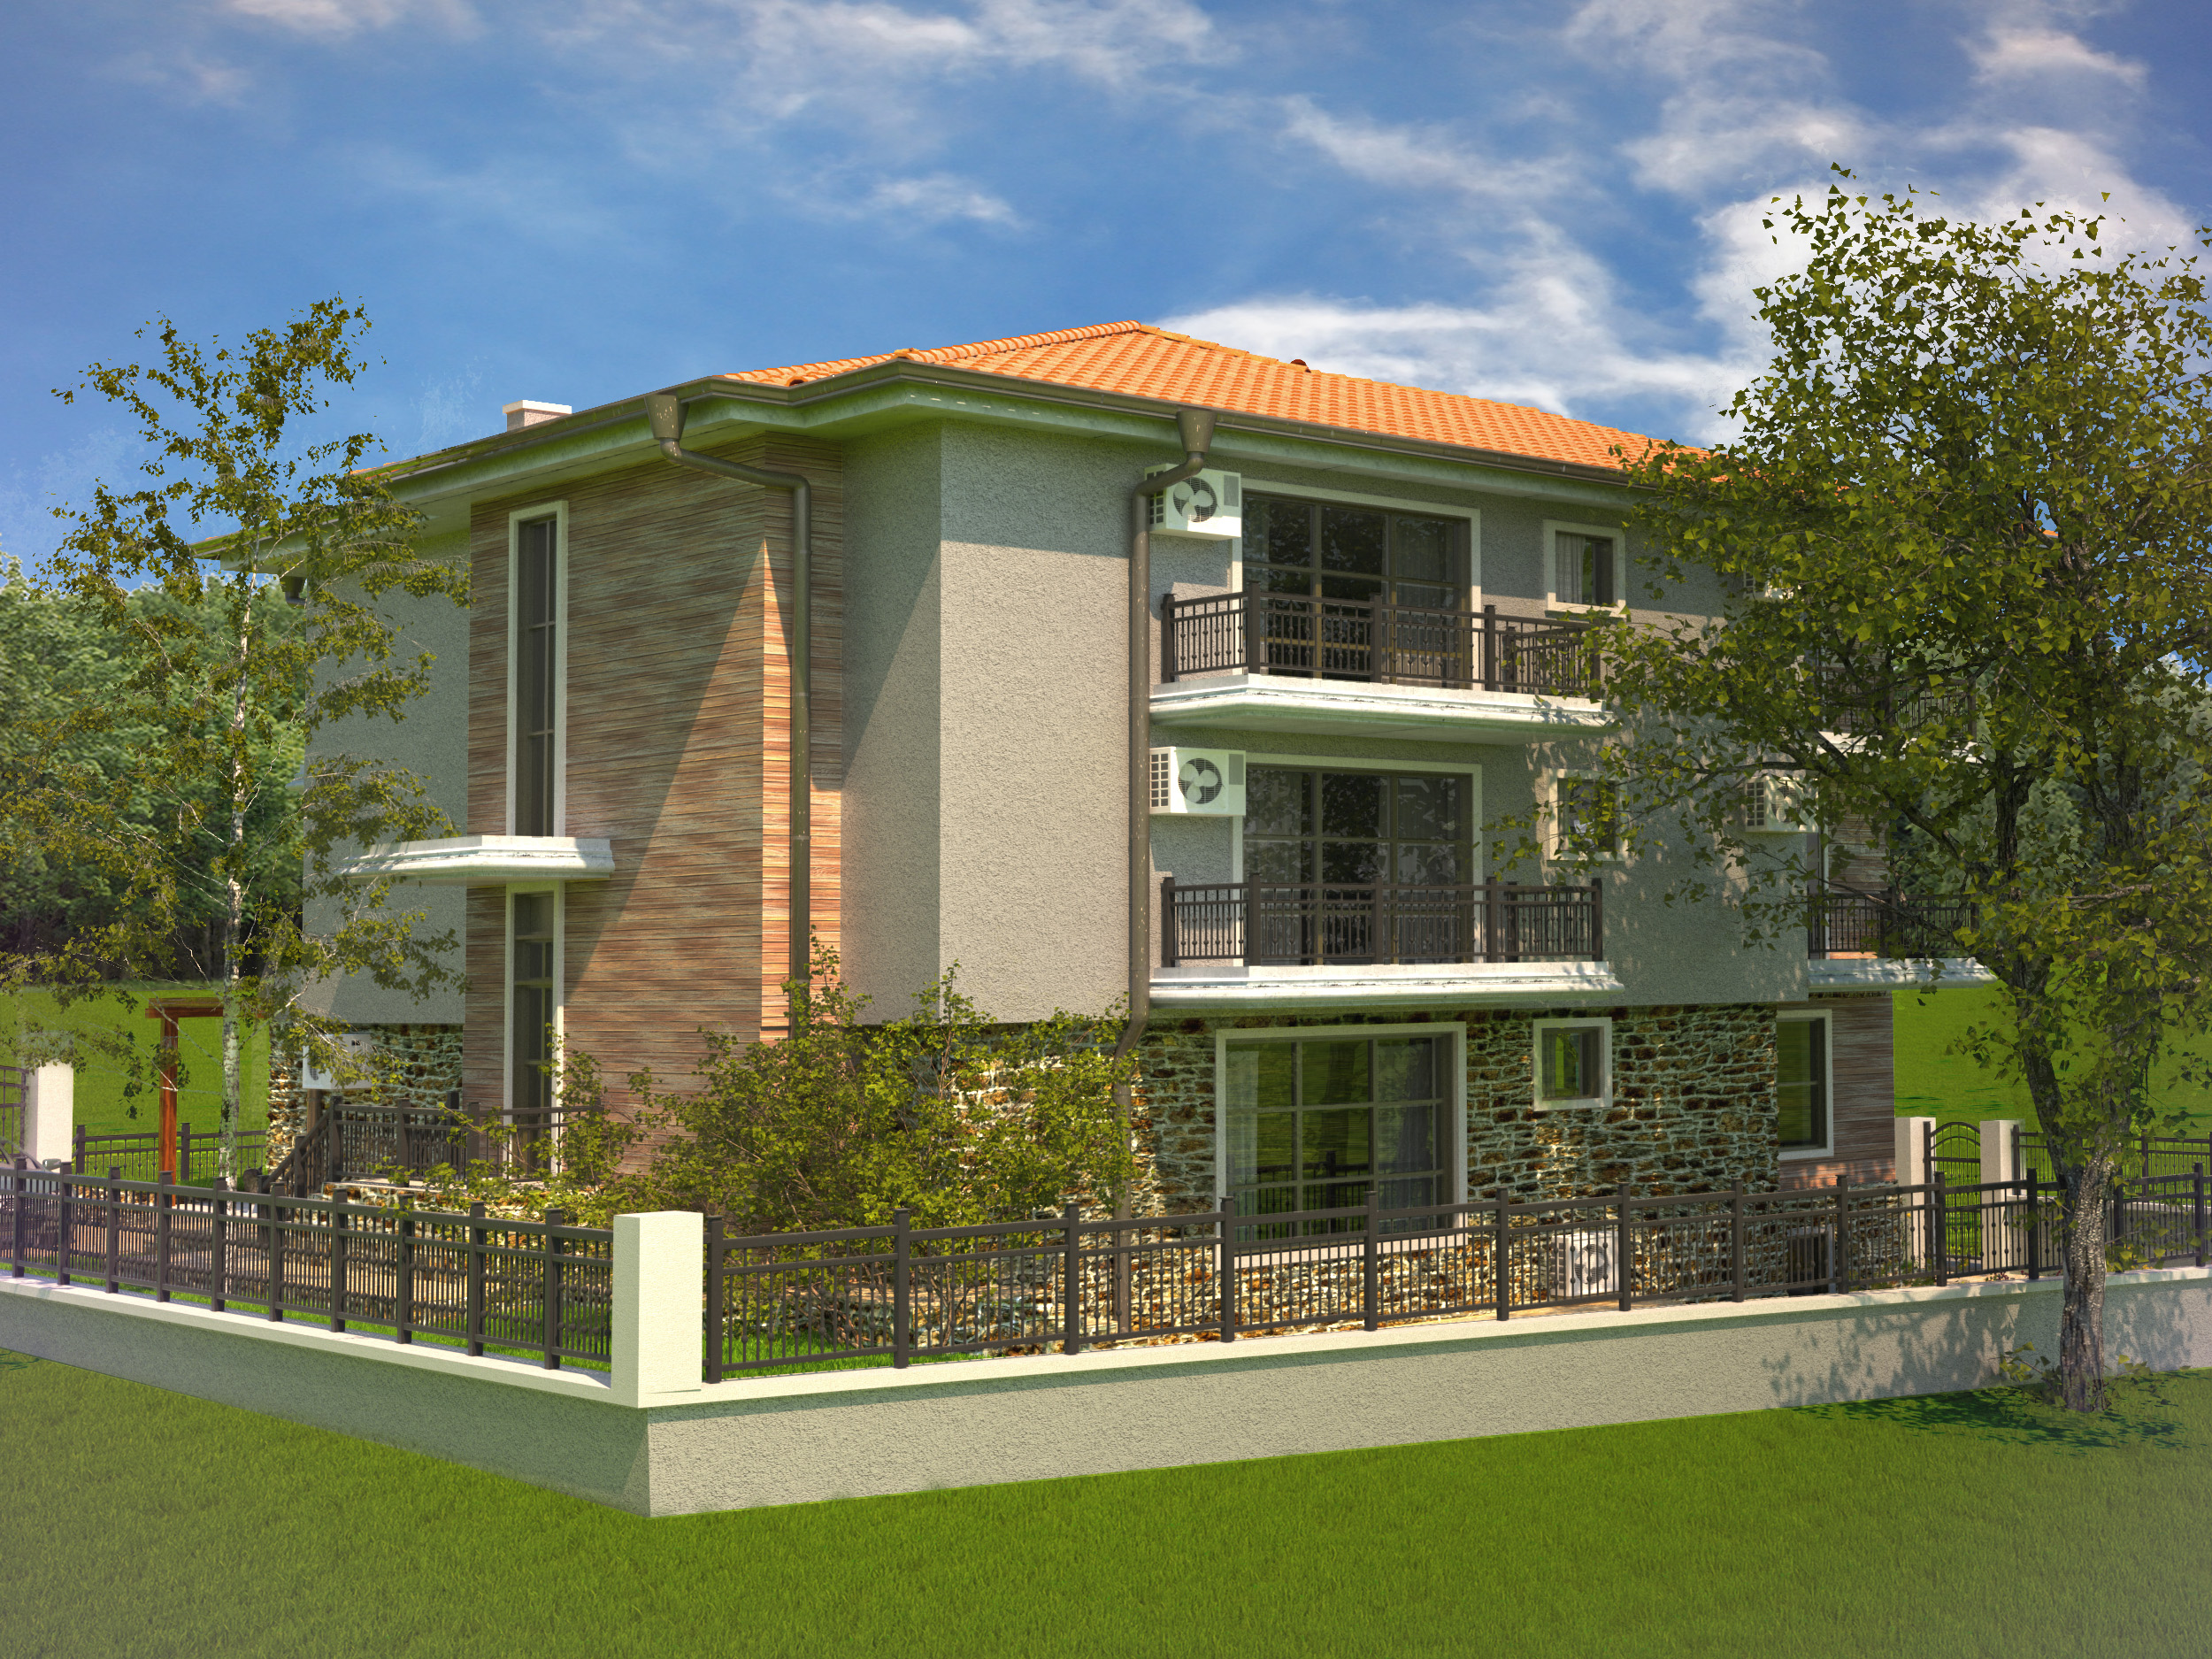 A house in 3d max vray 3.0 image